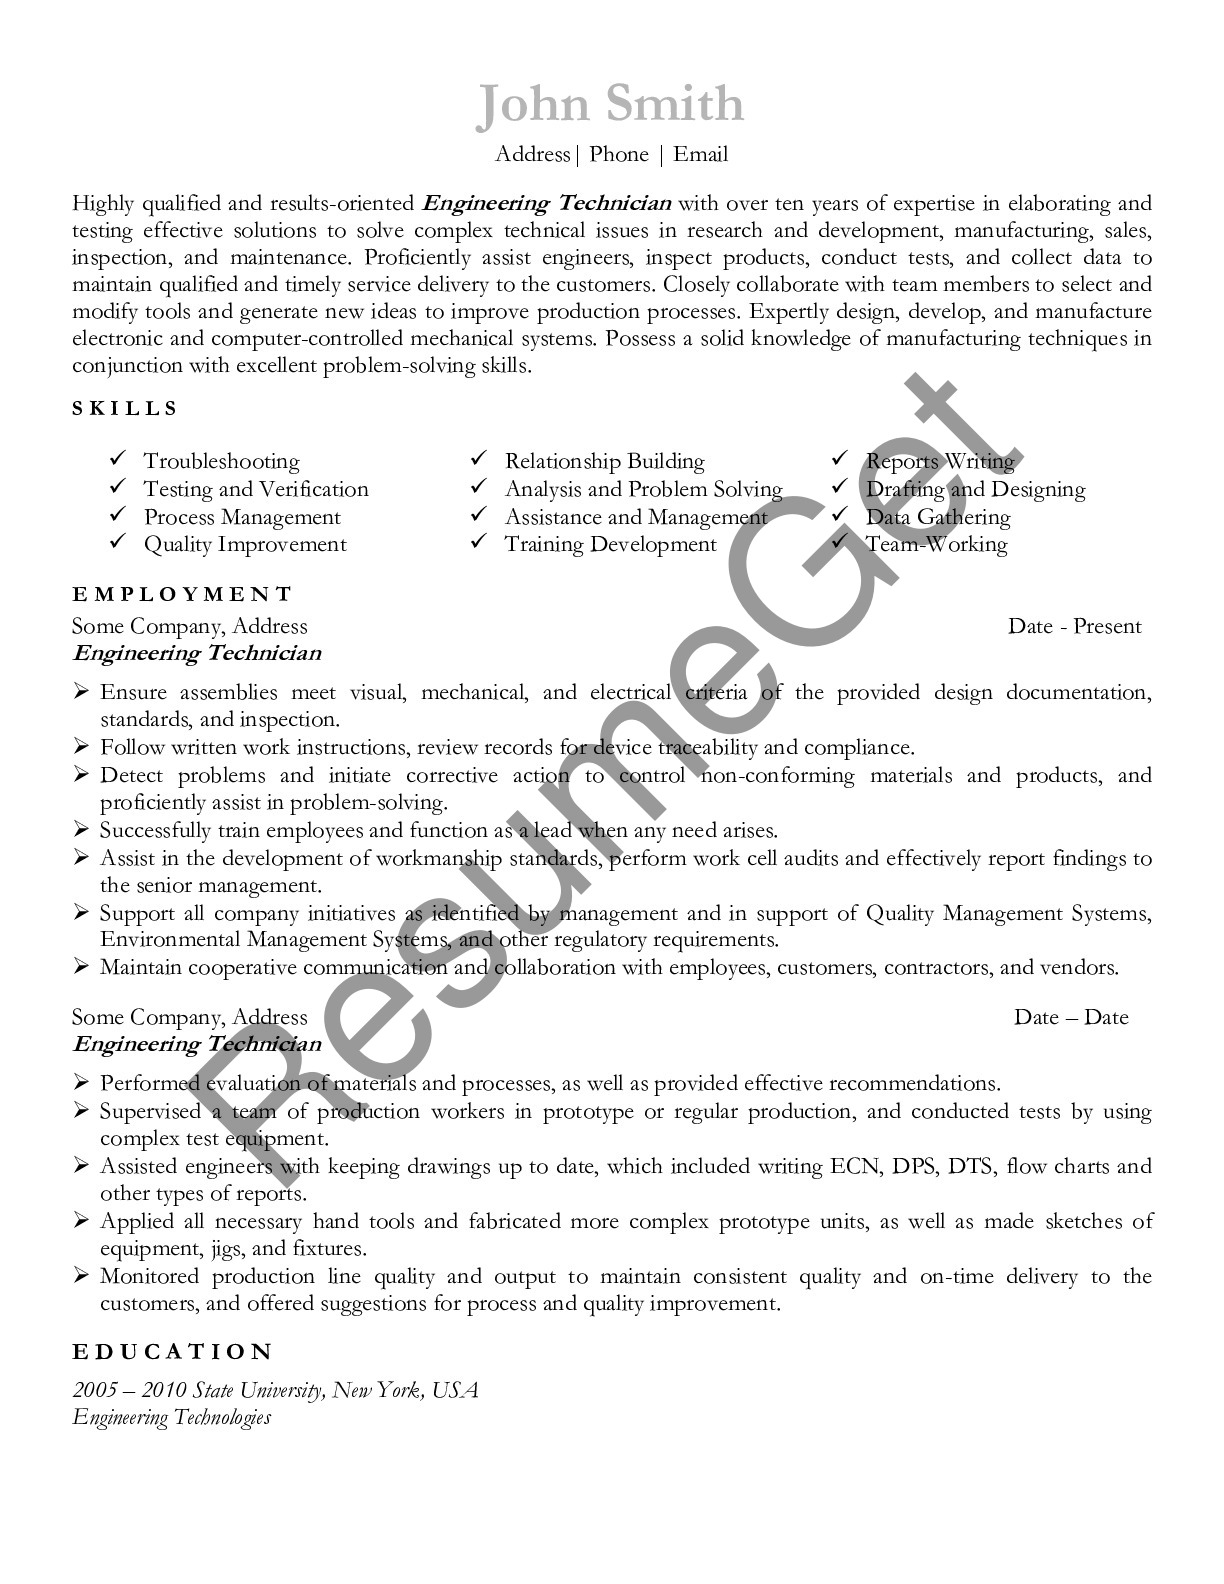 Resume for Engineering Technician